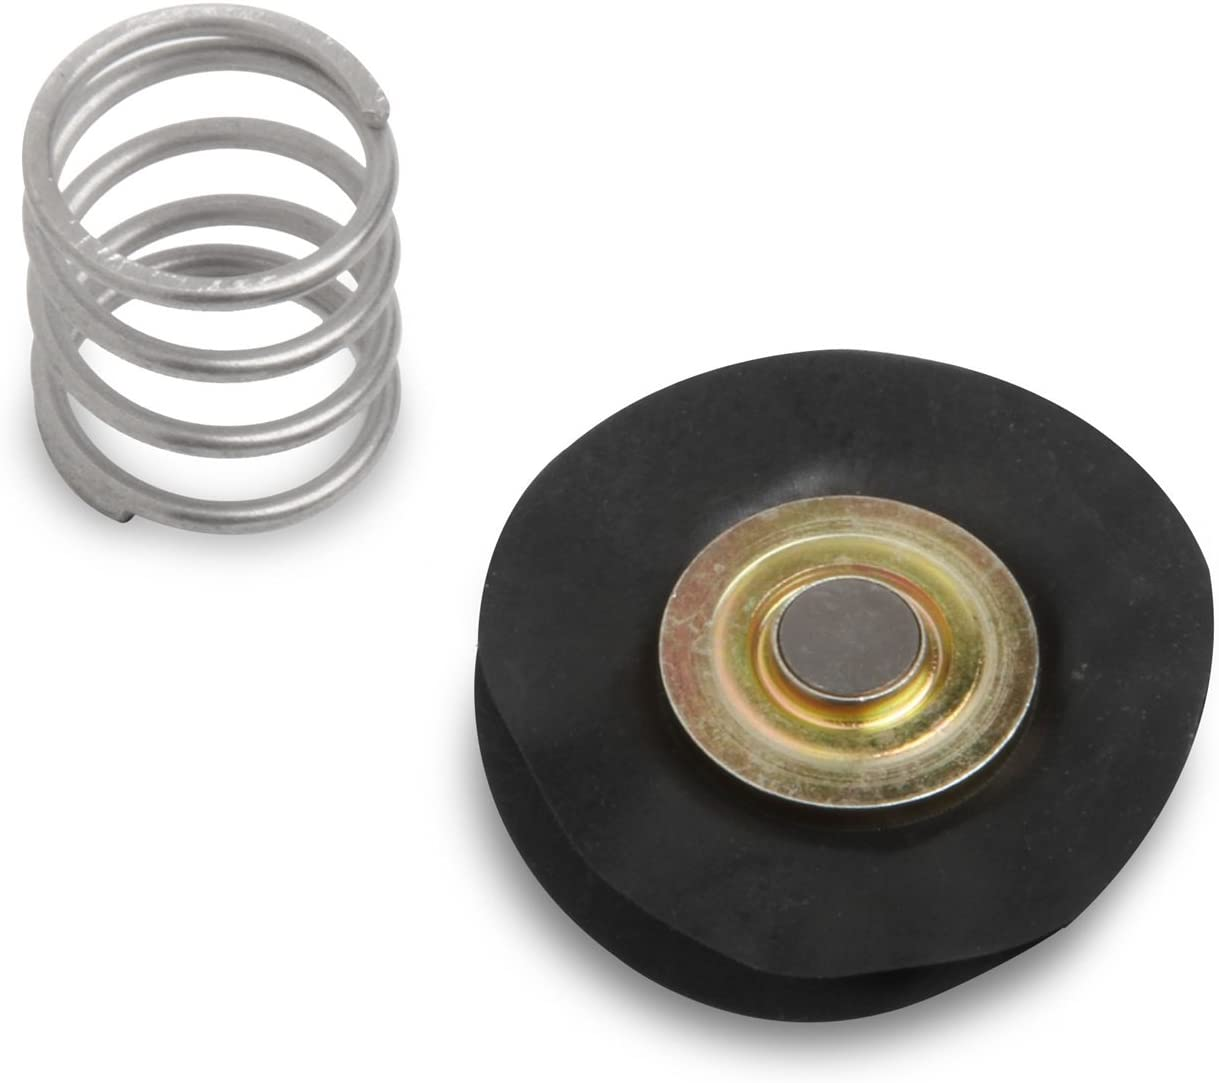 Holley 12-825 Fuel Pressure Regulator '12-845' '12-847' for Max 44% OFF Max 53% OFF and